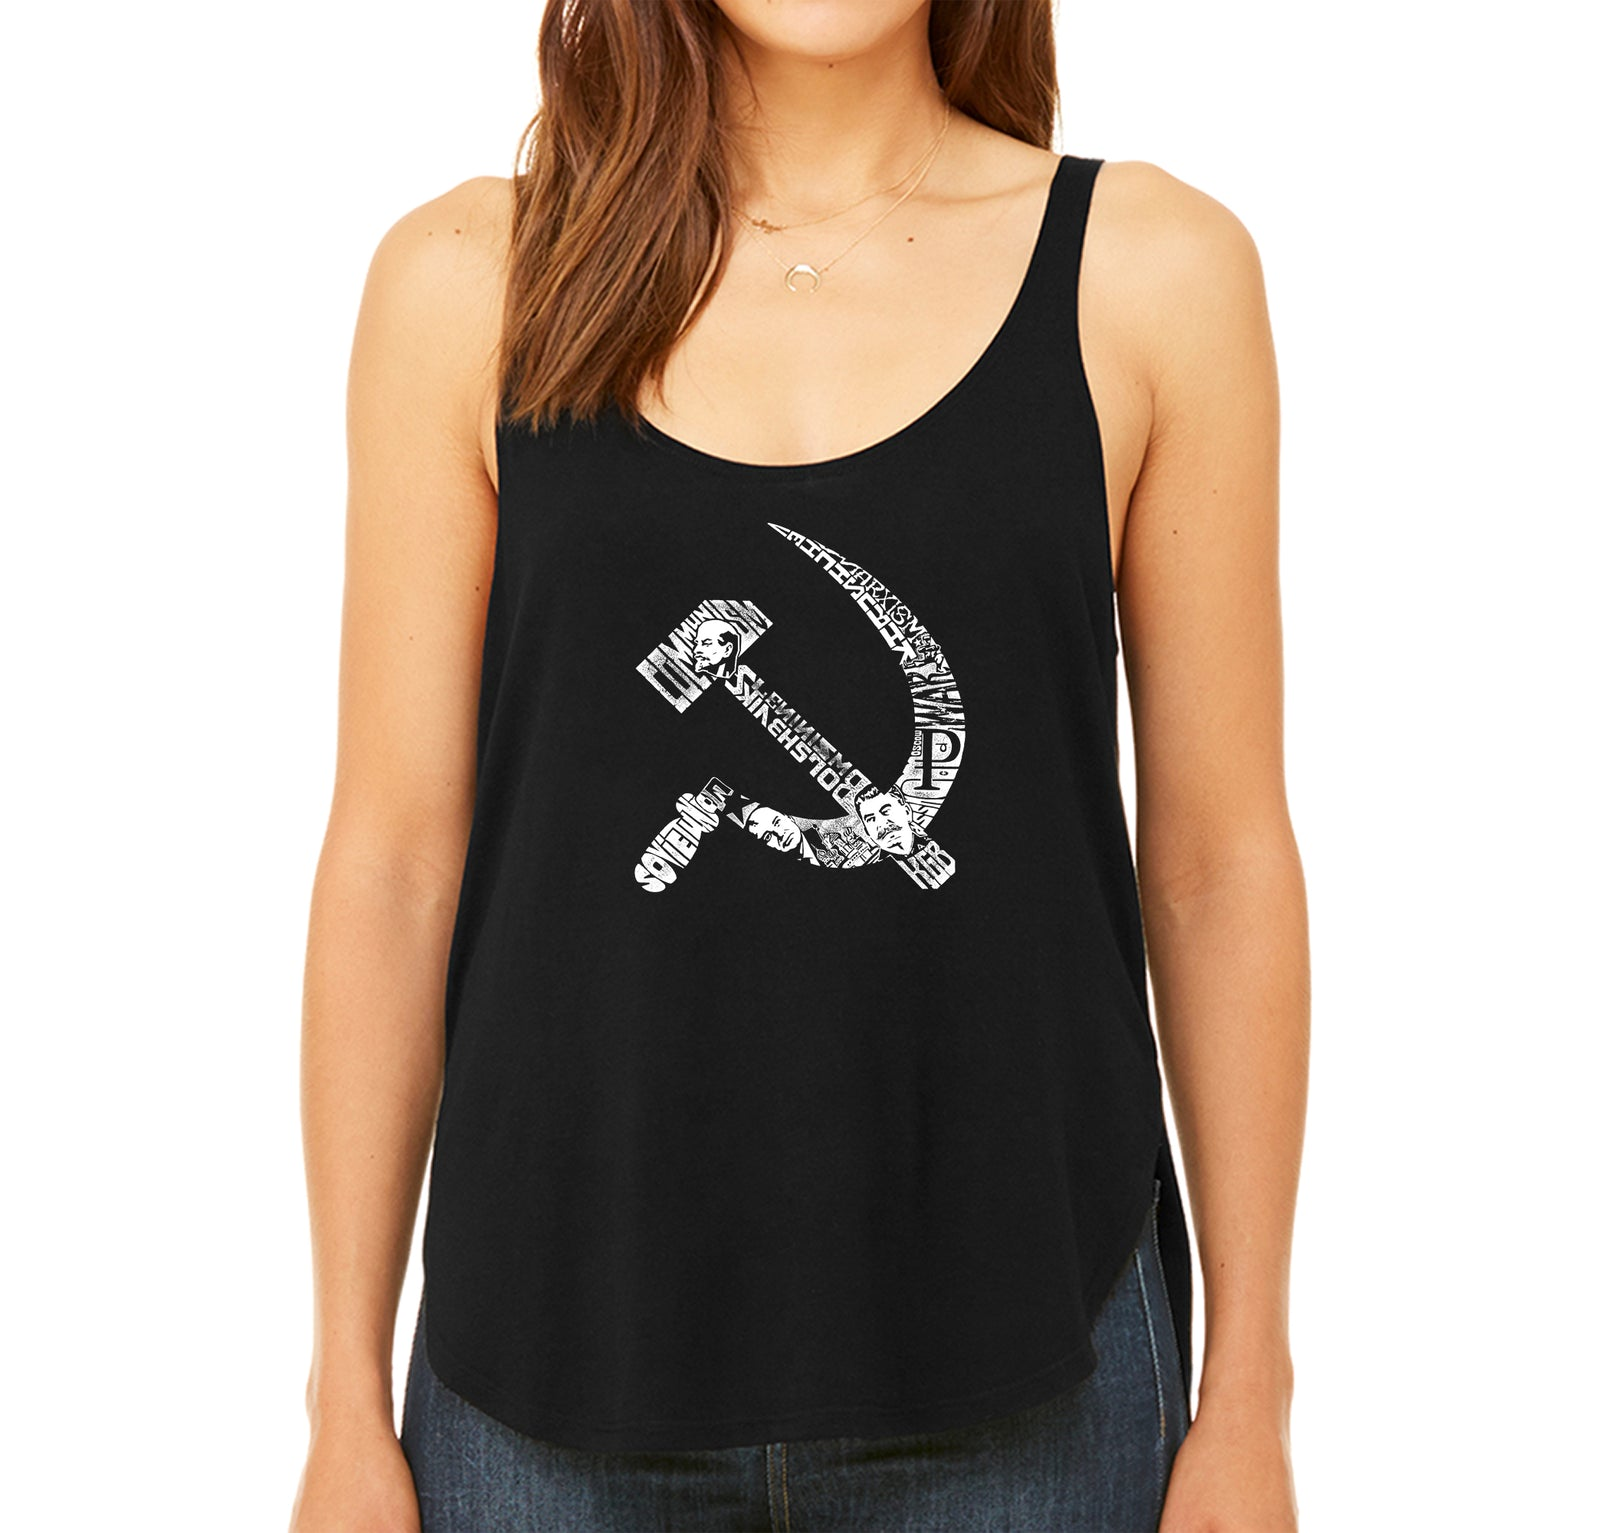 Women's Premium Word Art Flowy Tank Top - SOVIET HAMMER AND SICKLE